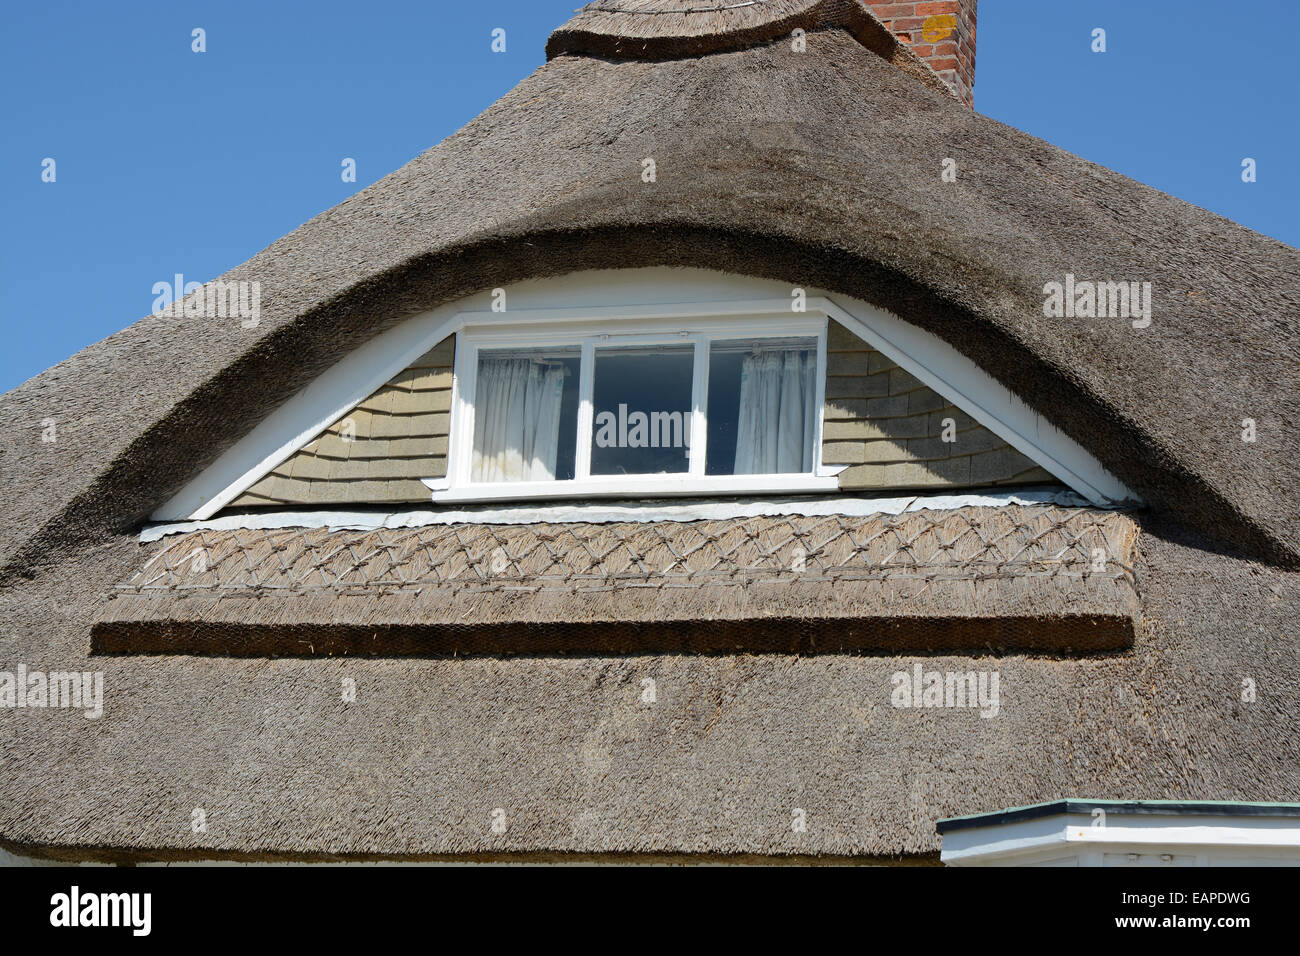 Thatched Eyebrow Roof Stock Photos Thatched Eyebrow Roof Stock